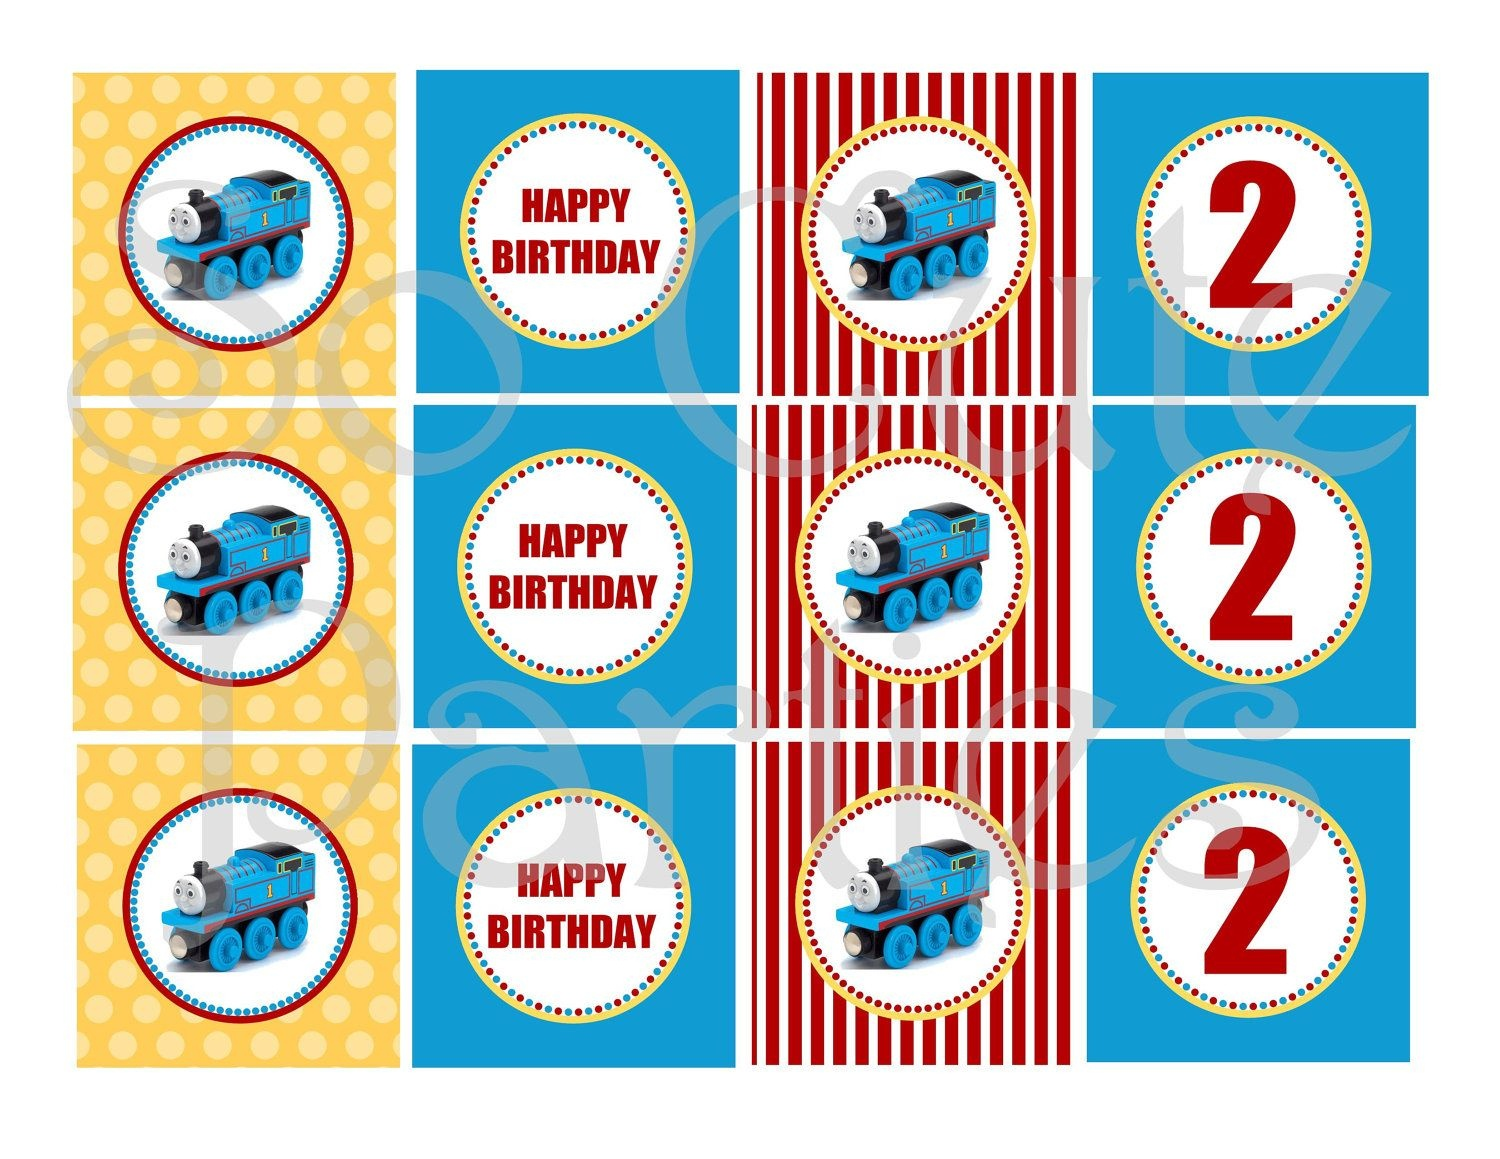 Thomas The Train Diy Printable Cupcake Toppers Blue Yellow And Red - Free Printable Thomas The Train Cupcake Toppers